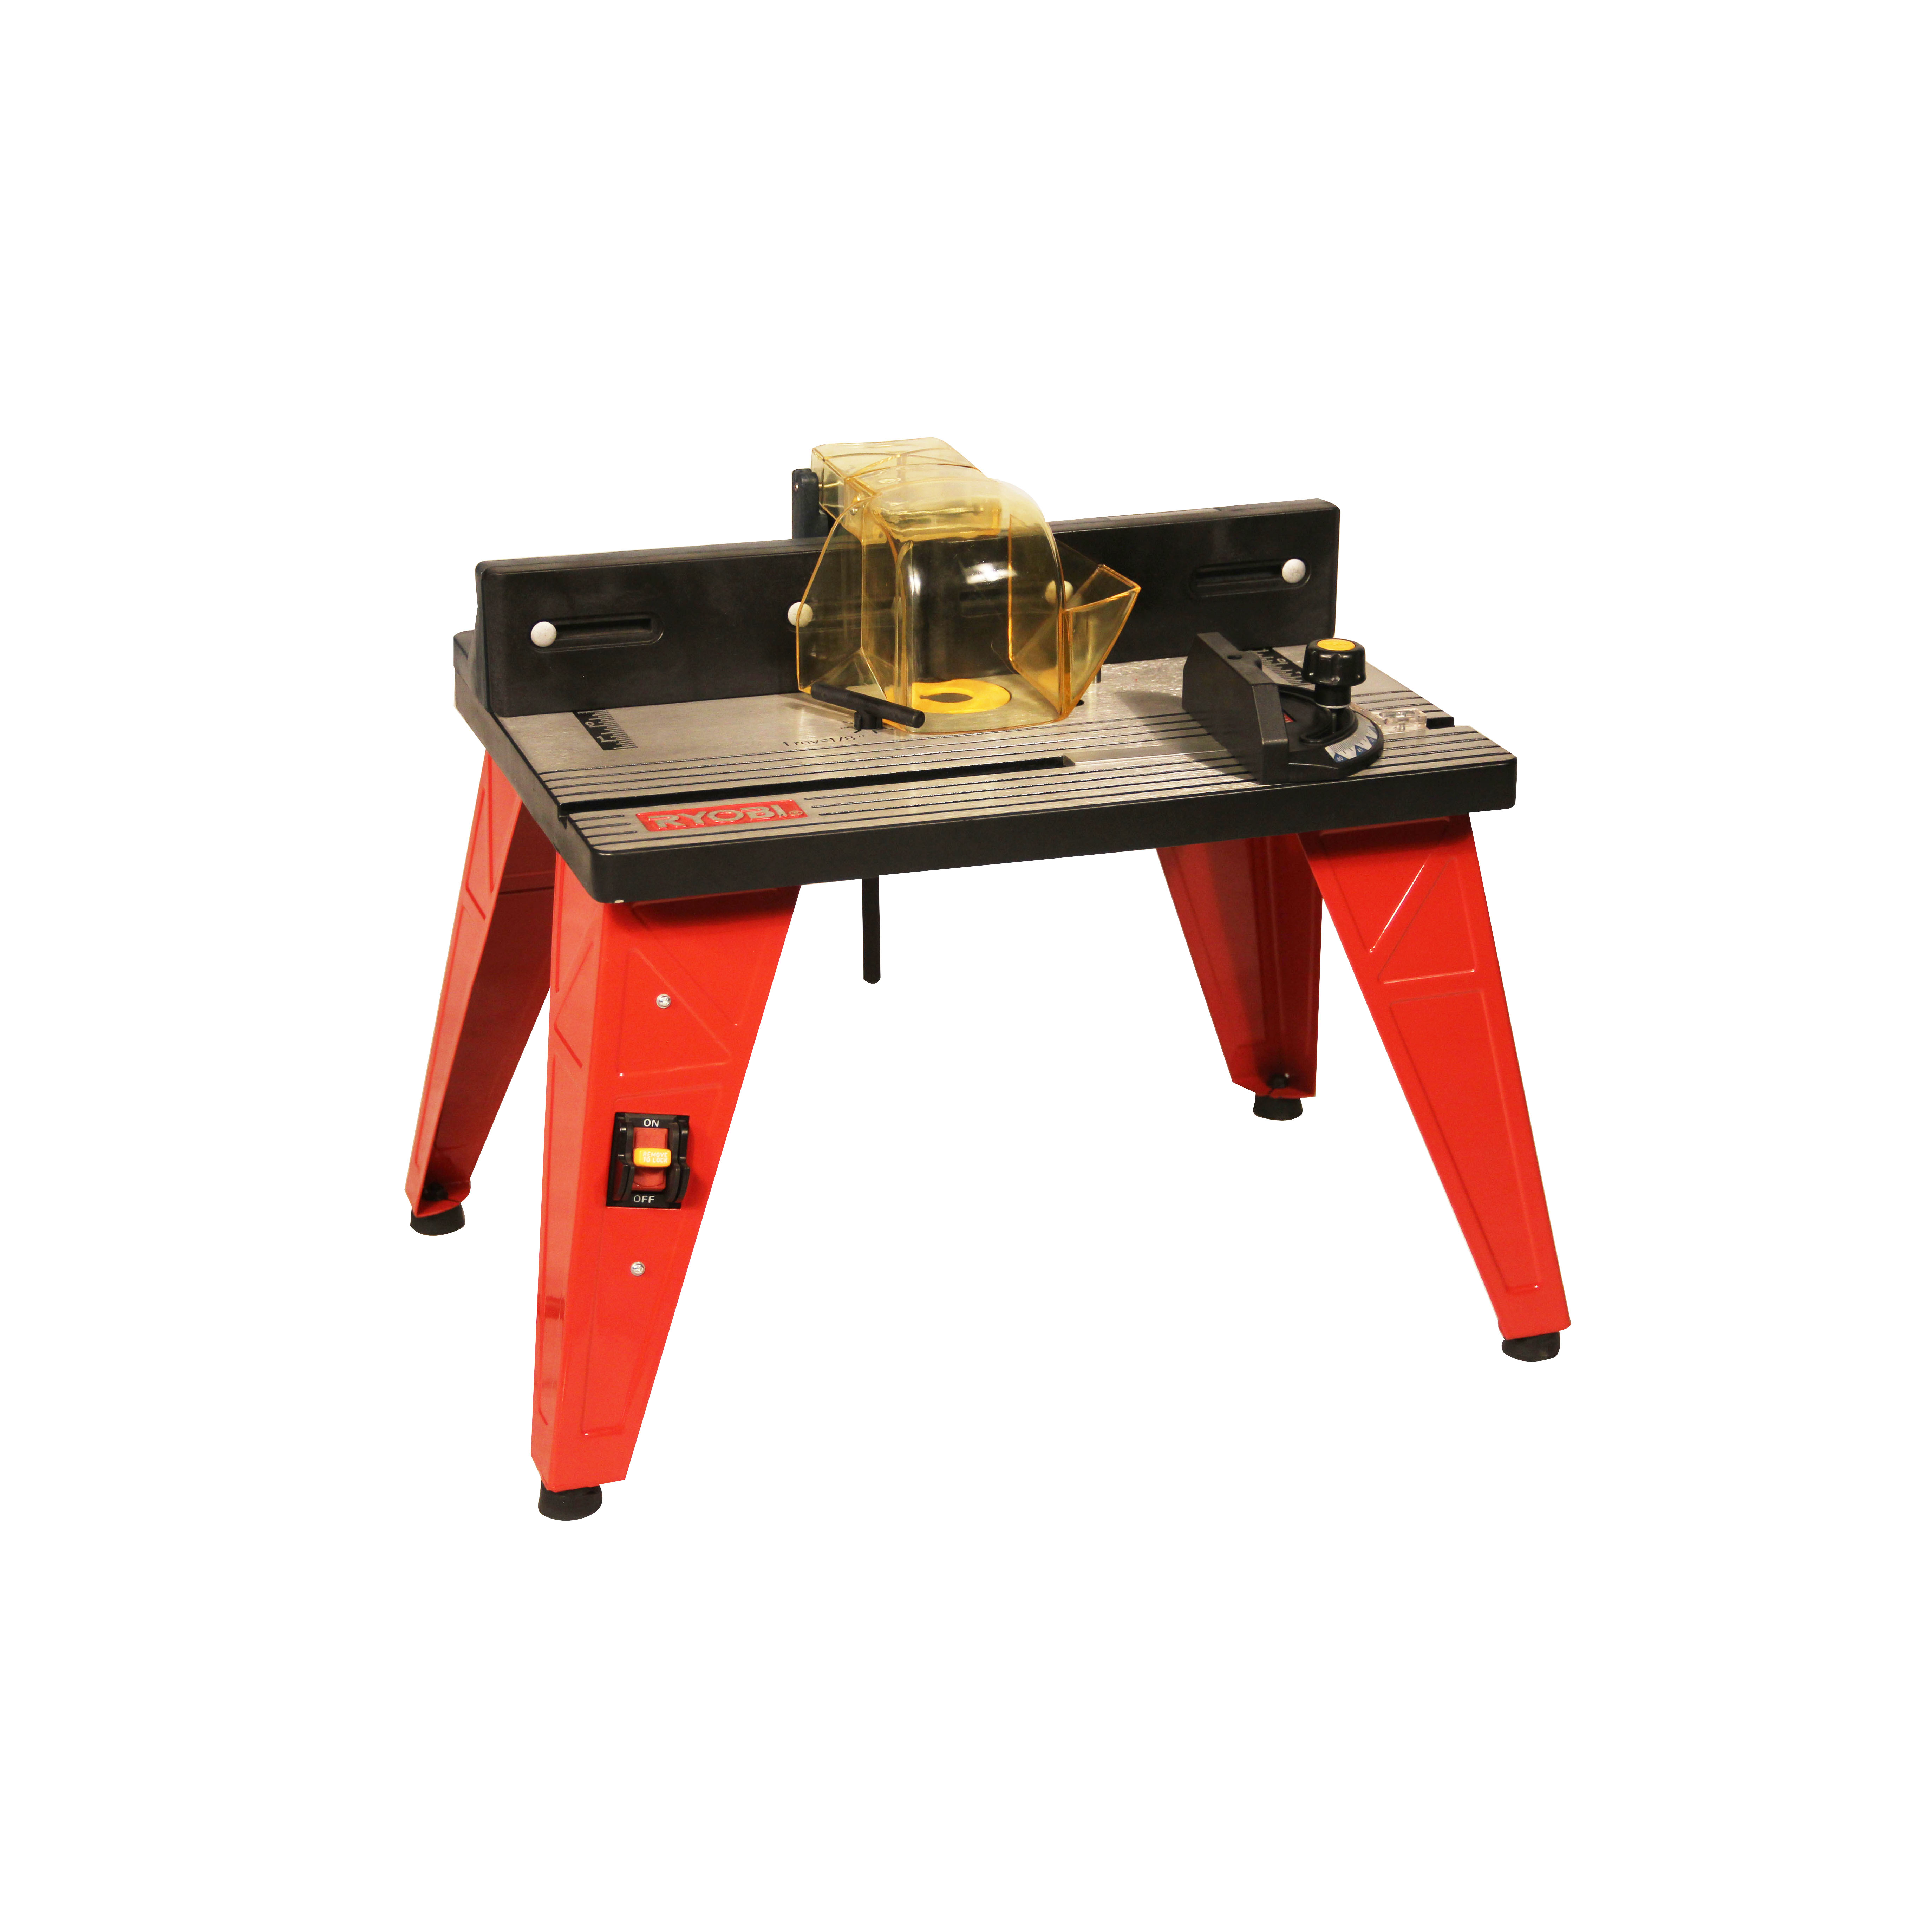 Rt1503 Router Table Woodworking Bench For Sale Buy Woodworking Bench For Sale Woodworking Bench For Sale Router Table Product On Alibaba Com